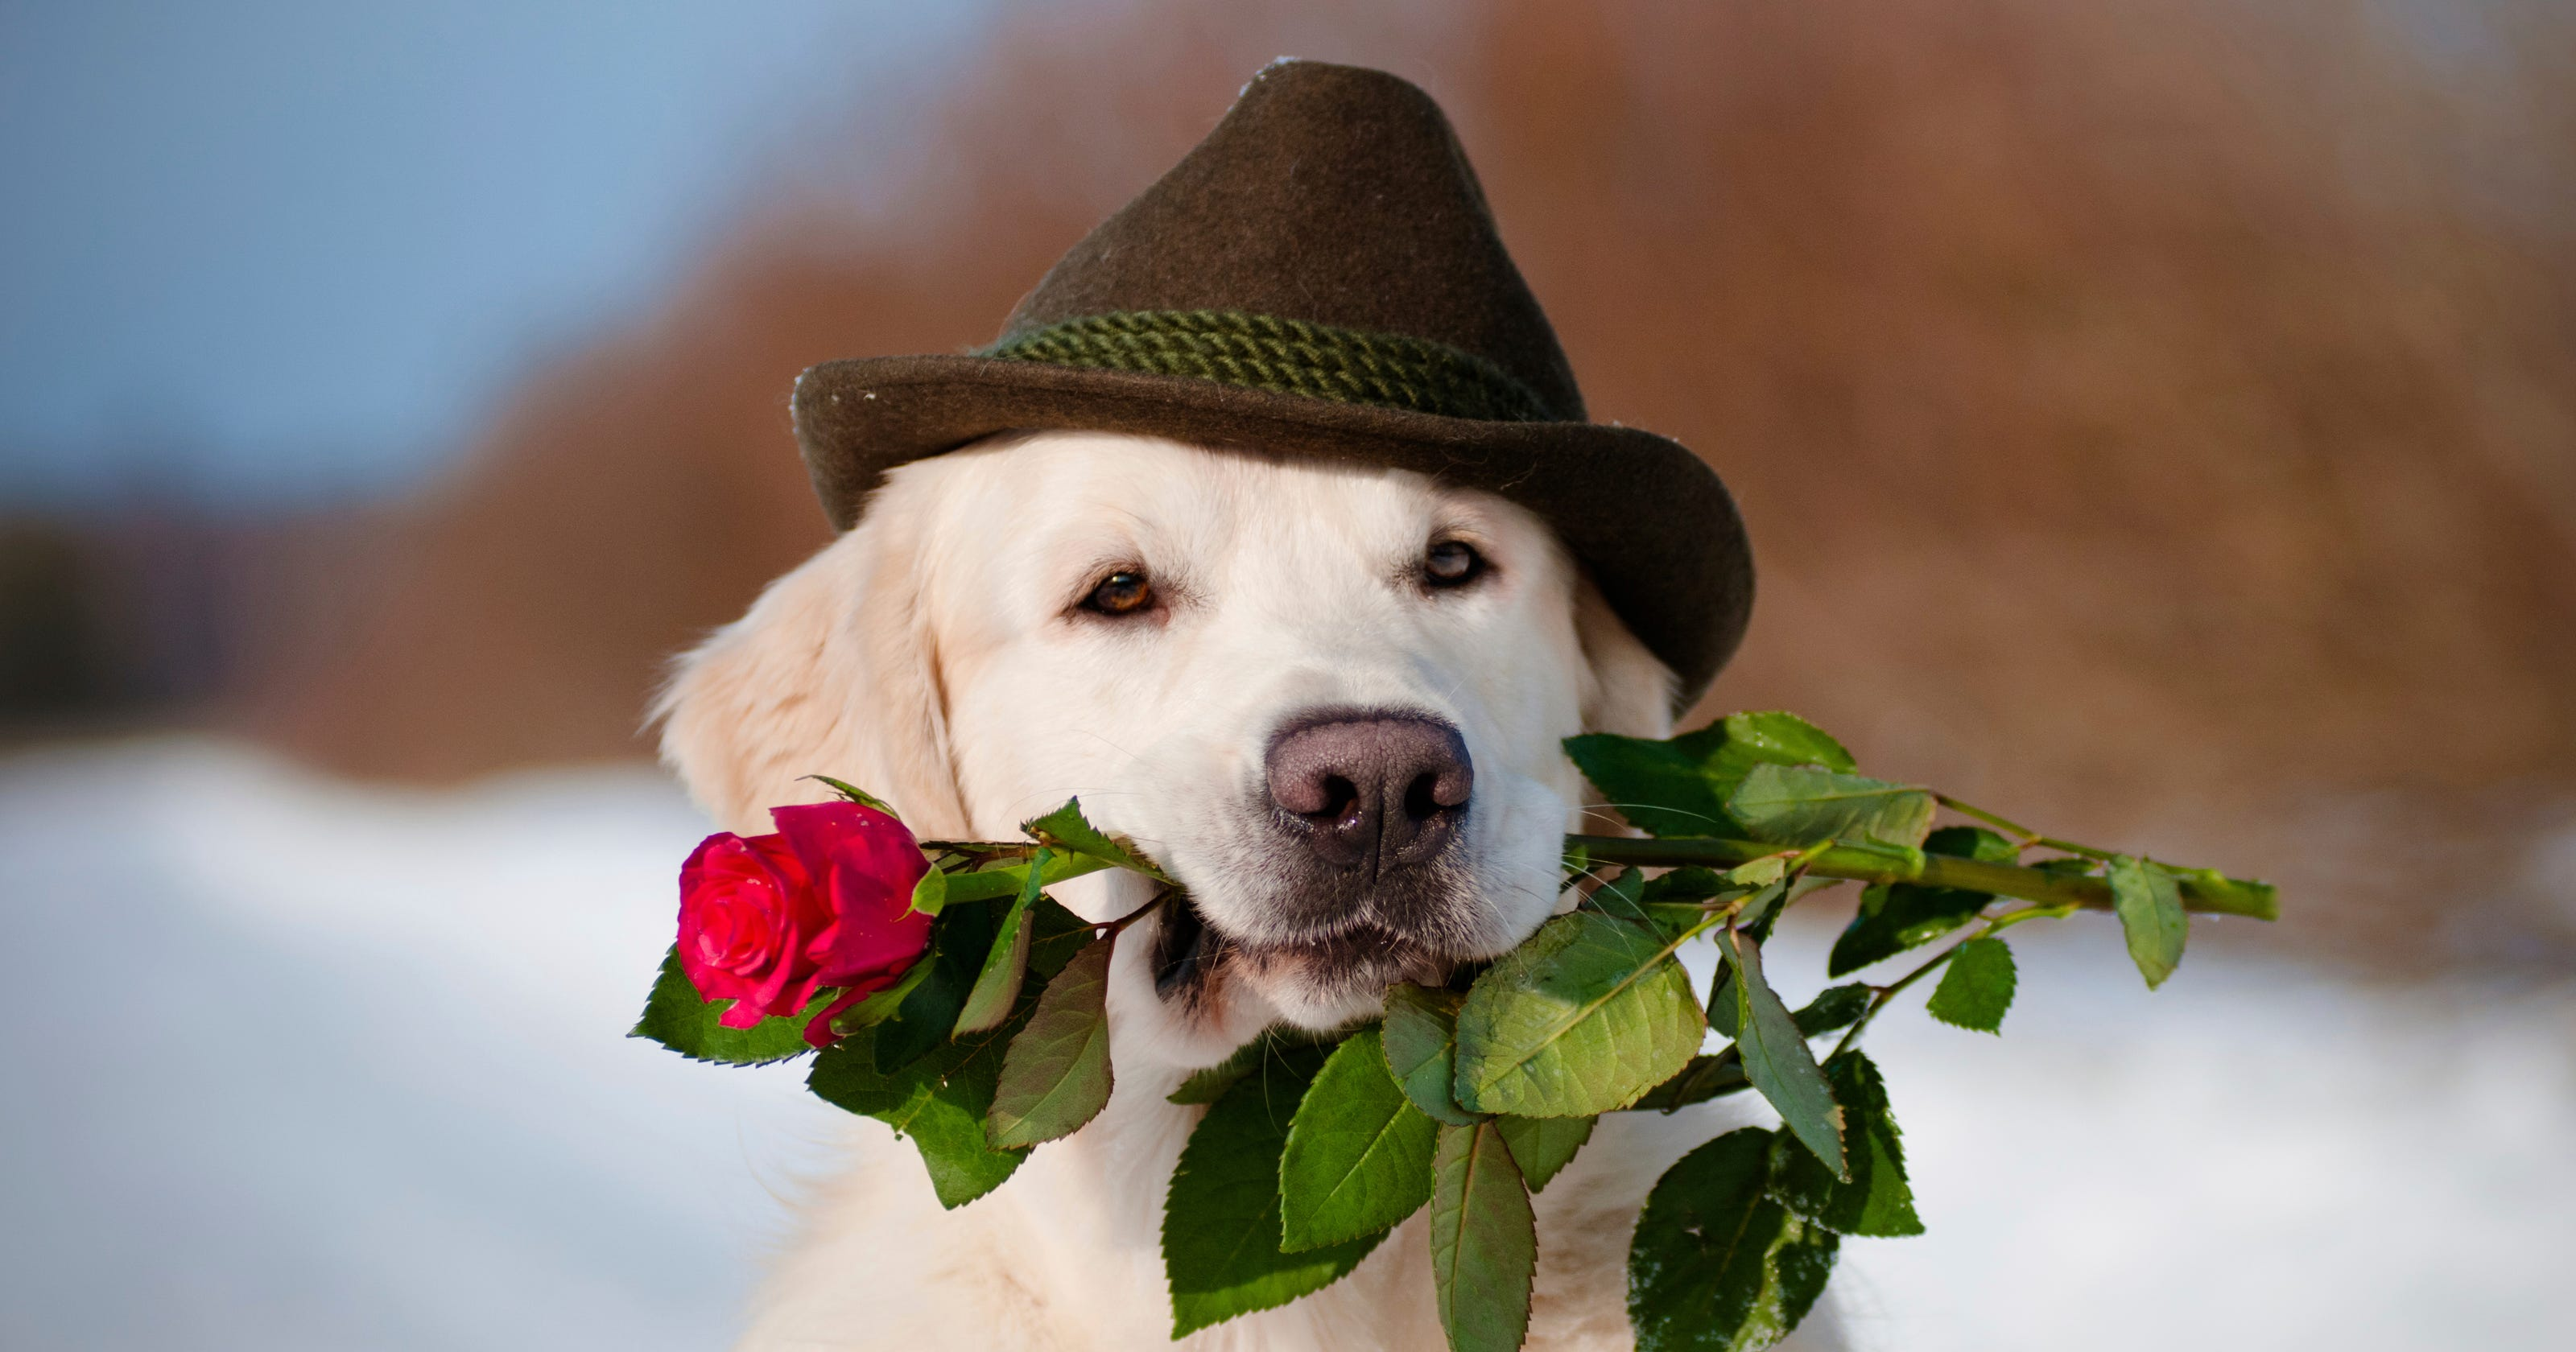 Puppies to deliver flowers on Valentine's Day